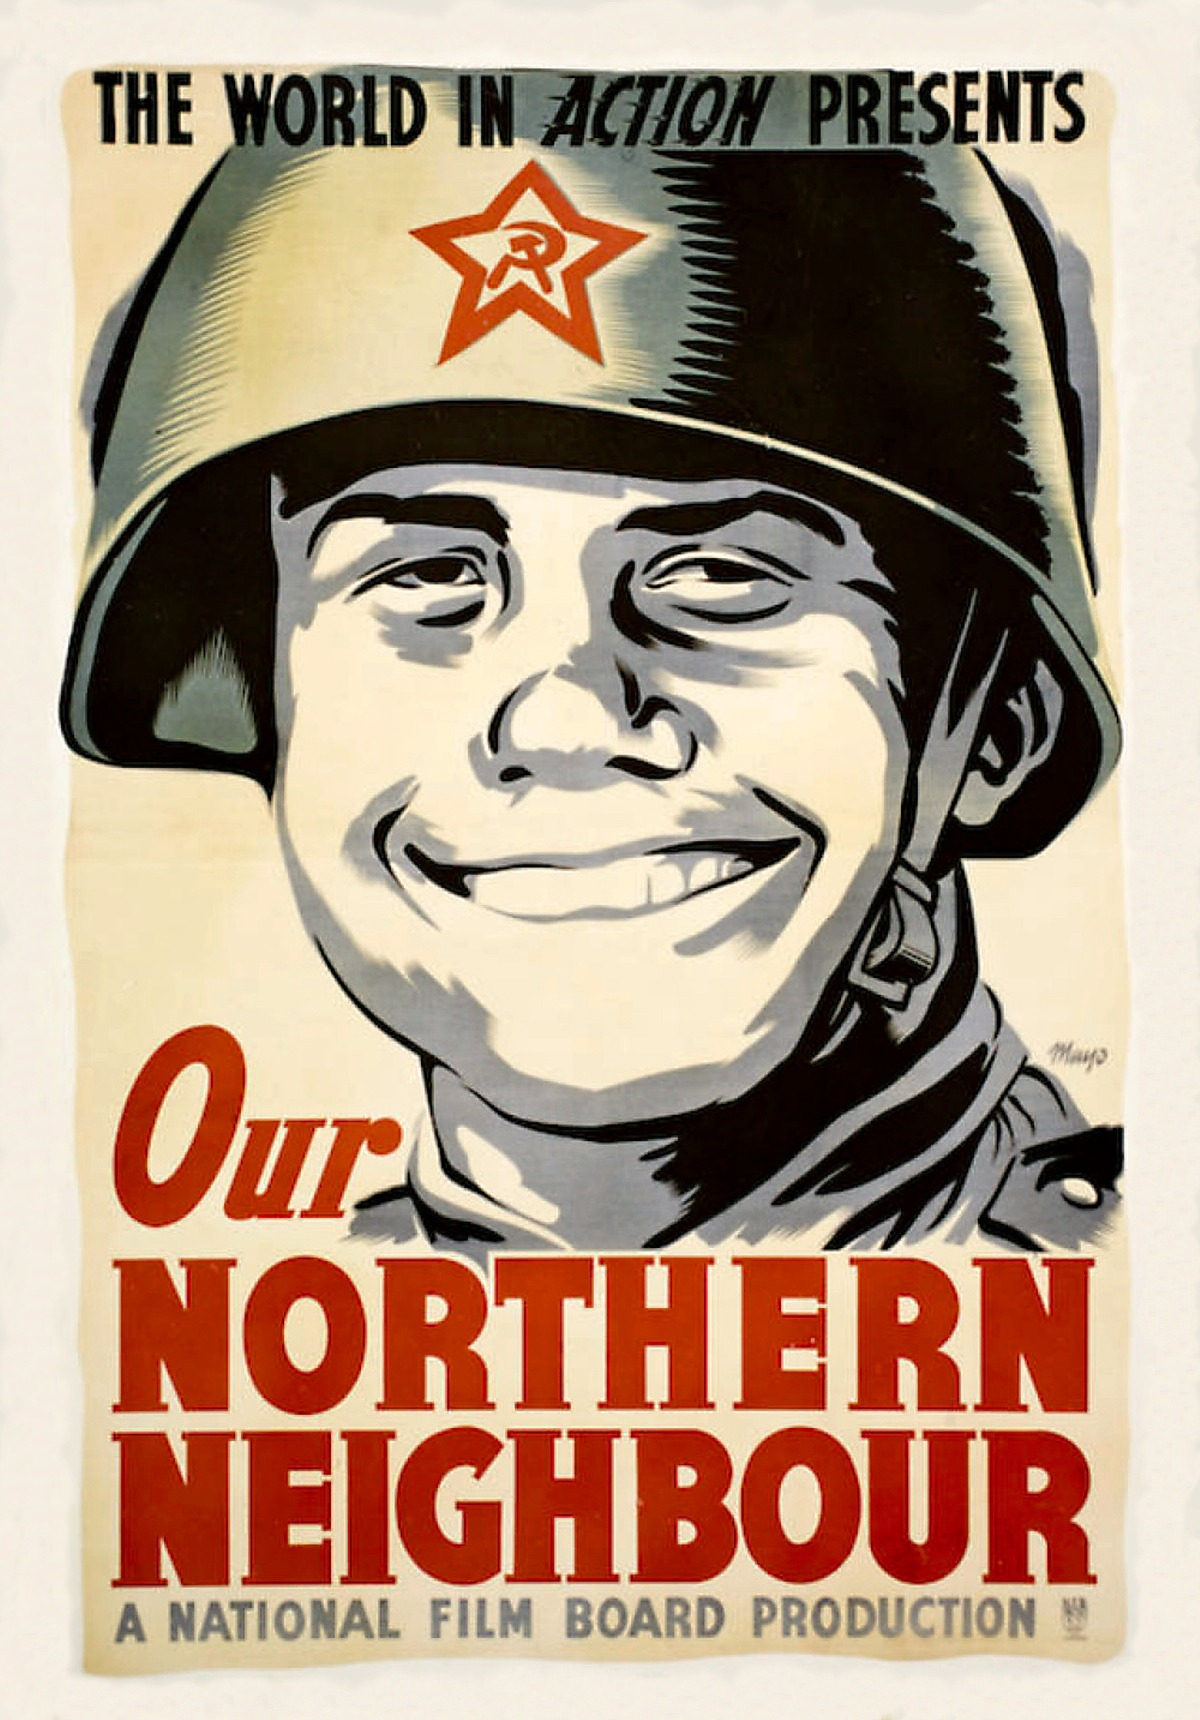 00 Lend-Lease Posters 01. USSR. Our Northern Neighbour. 28.11.13